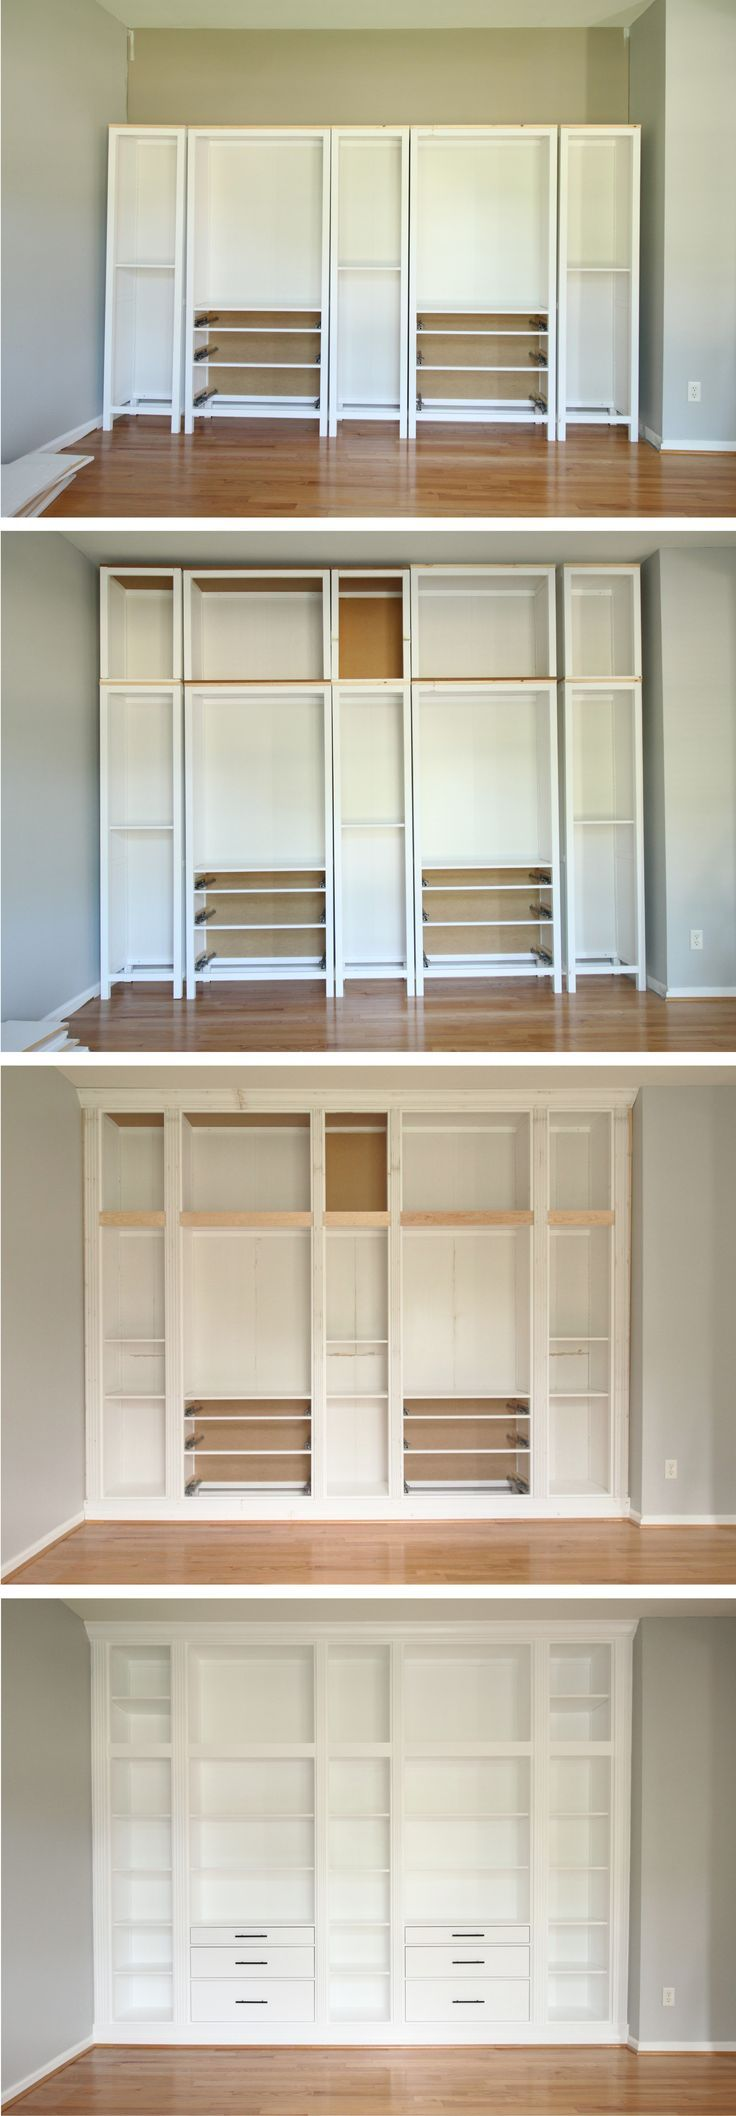 IKEA HACK: DIY BUILT-IN BOOKCASE with Hemnes furniture | Studio 36 Interiors